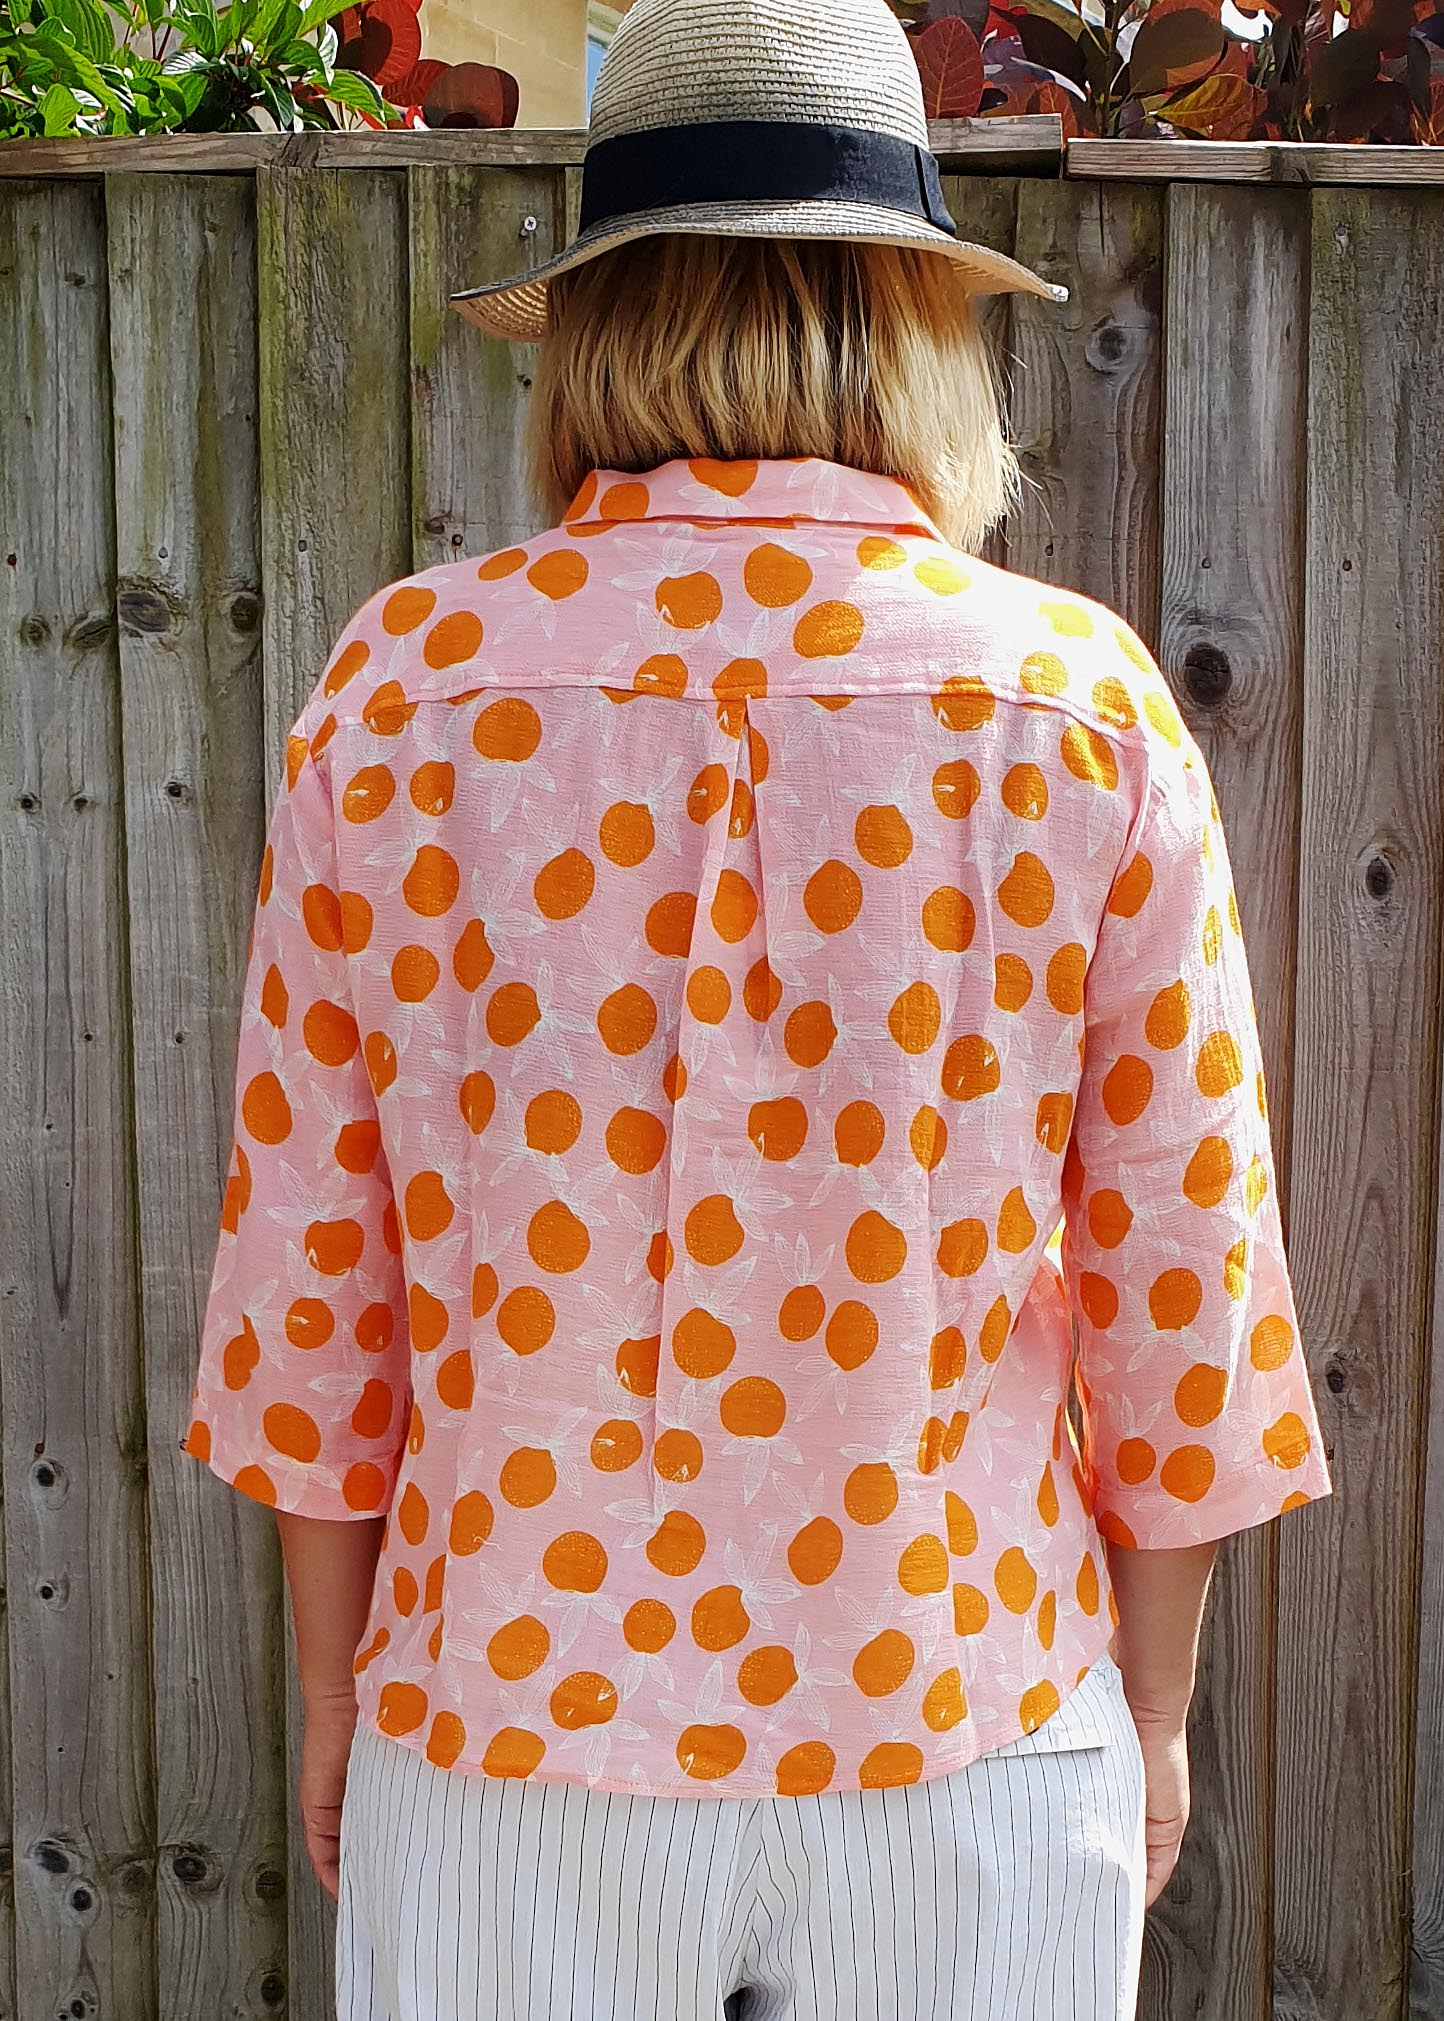 Sacré Coeur Orange & Pink Polka Dot Shirt, Shirts, Sacre Coeur, Blue Women - Blue Women's Clothing